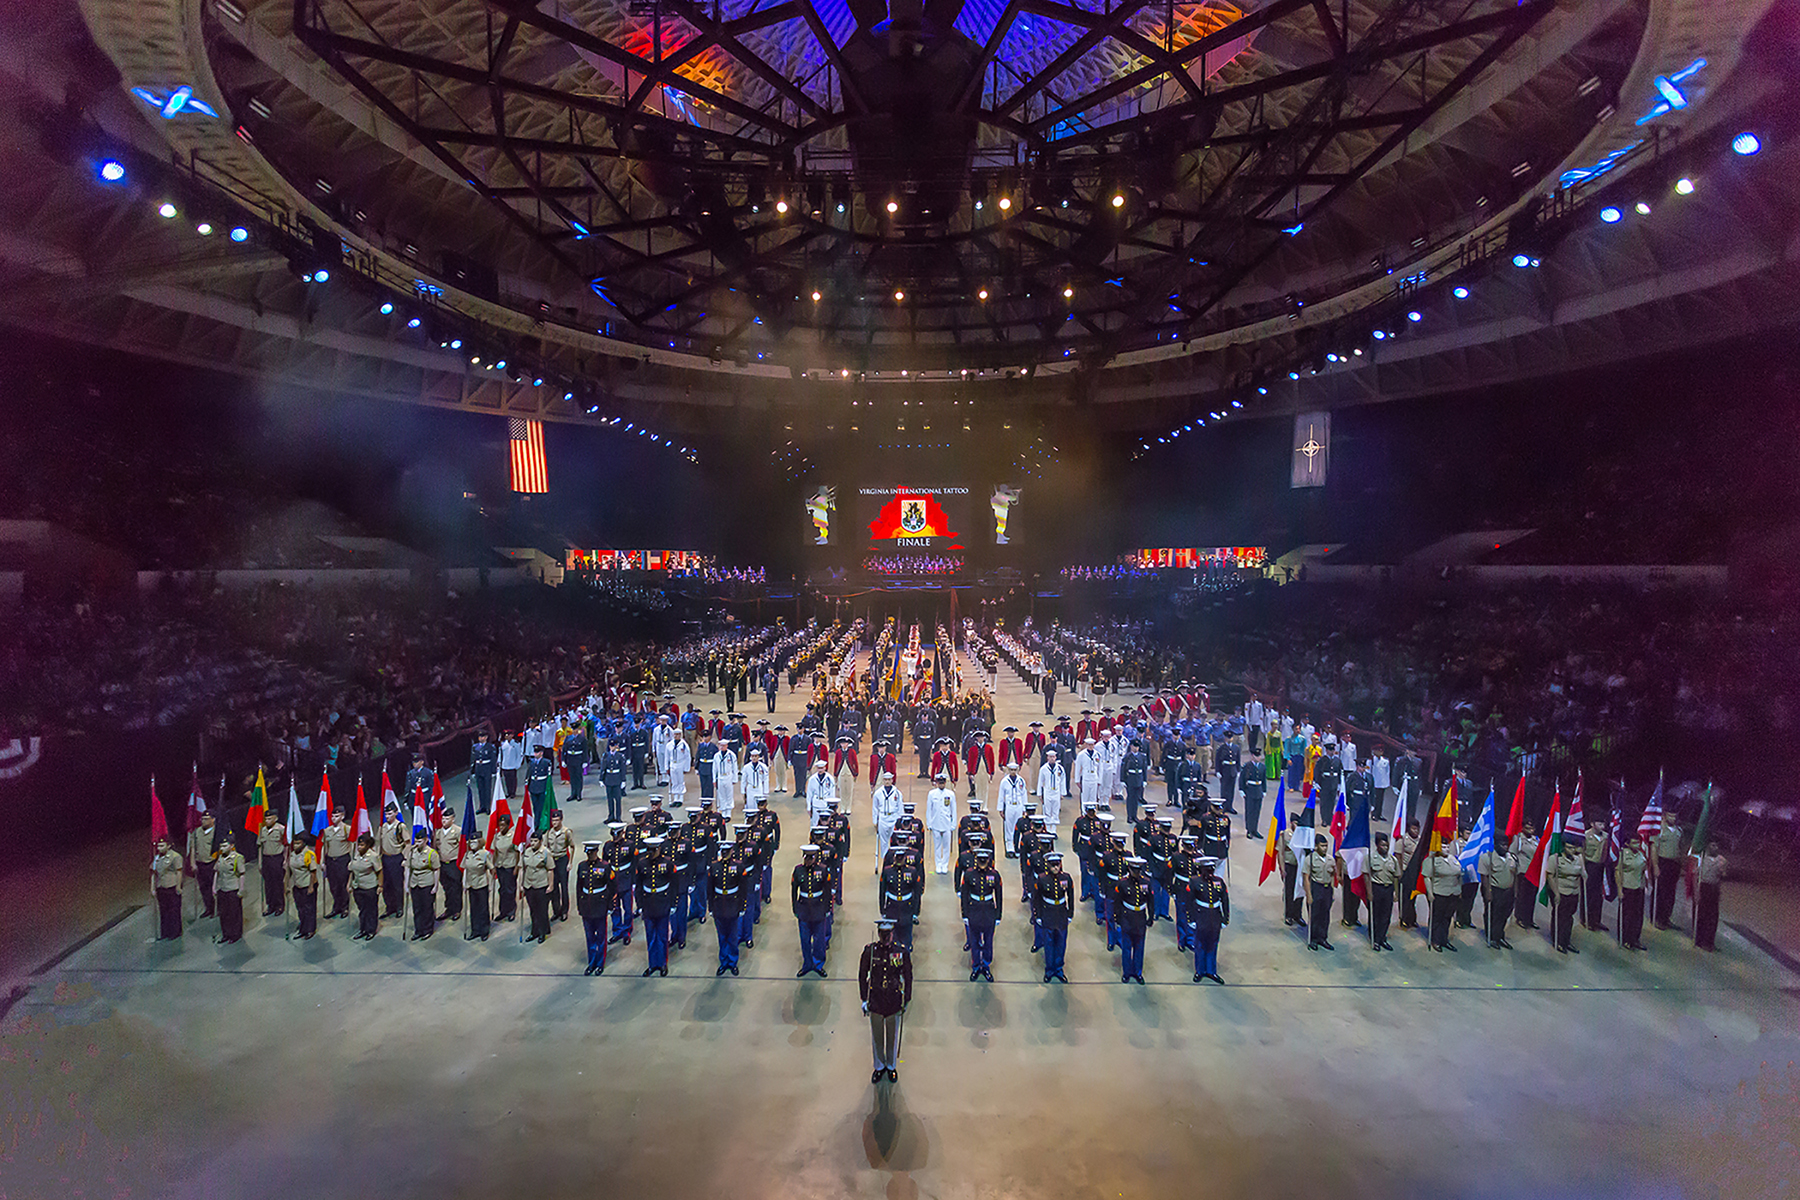 Uniformed military members and musicians of various services and branches from different nations, and costumed civilian performers, fill the floor of a large dome-ceilinged arena.